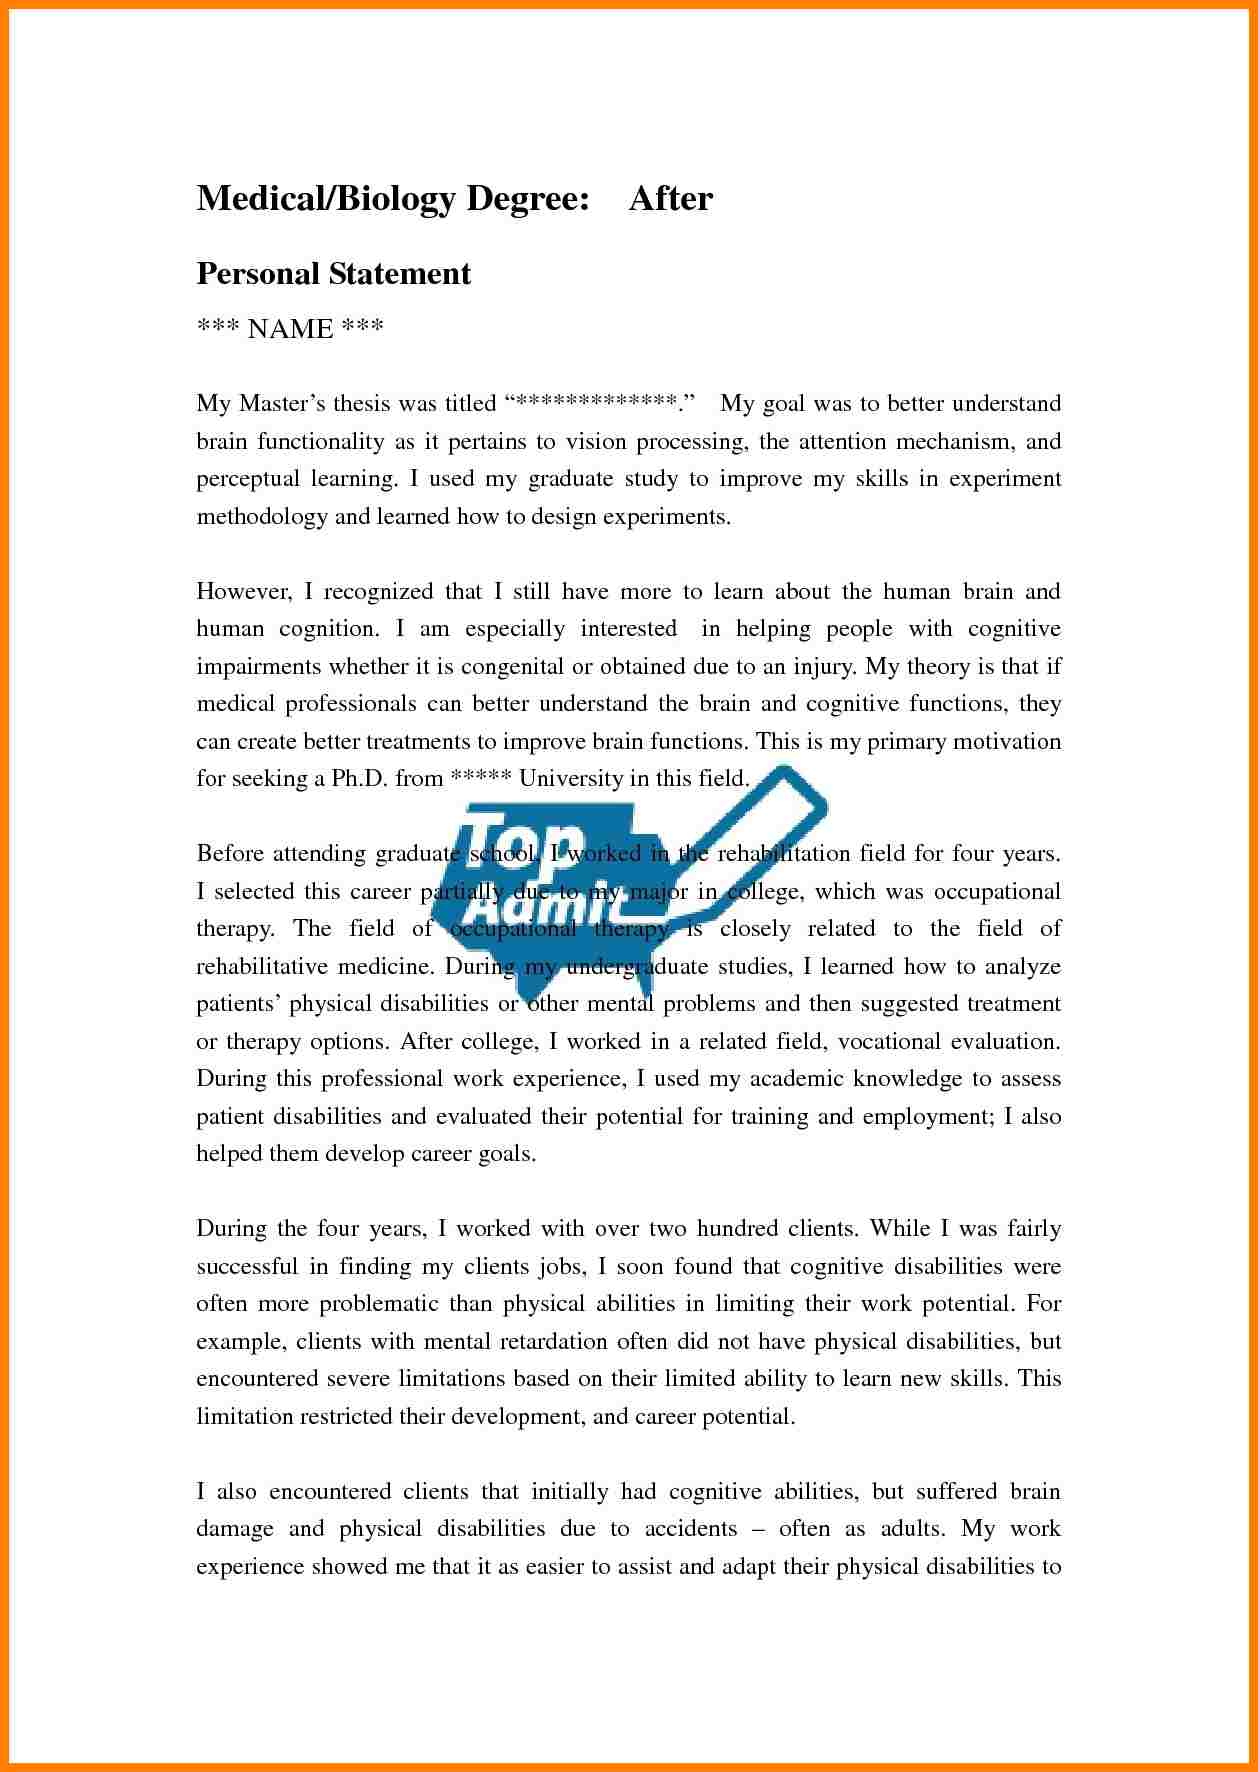 011 Essay Example Teen Essays On Football Basketball Baseball Track And Personal Goals For Graduate School L Exceptional Topics In English Wikipedia Full